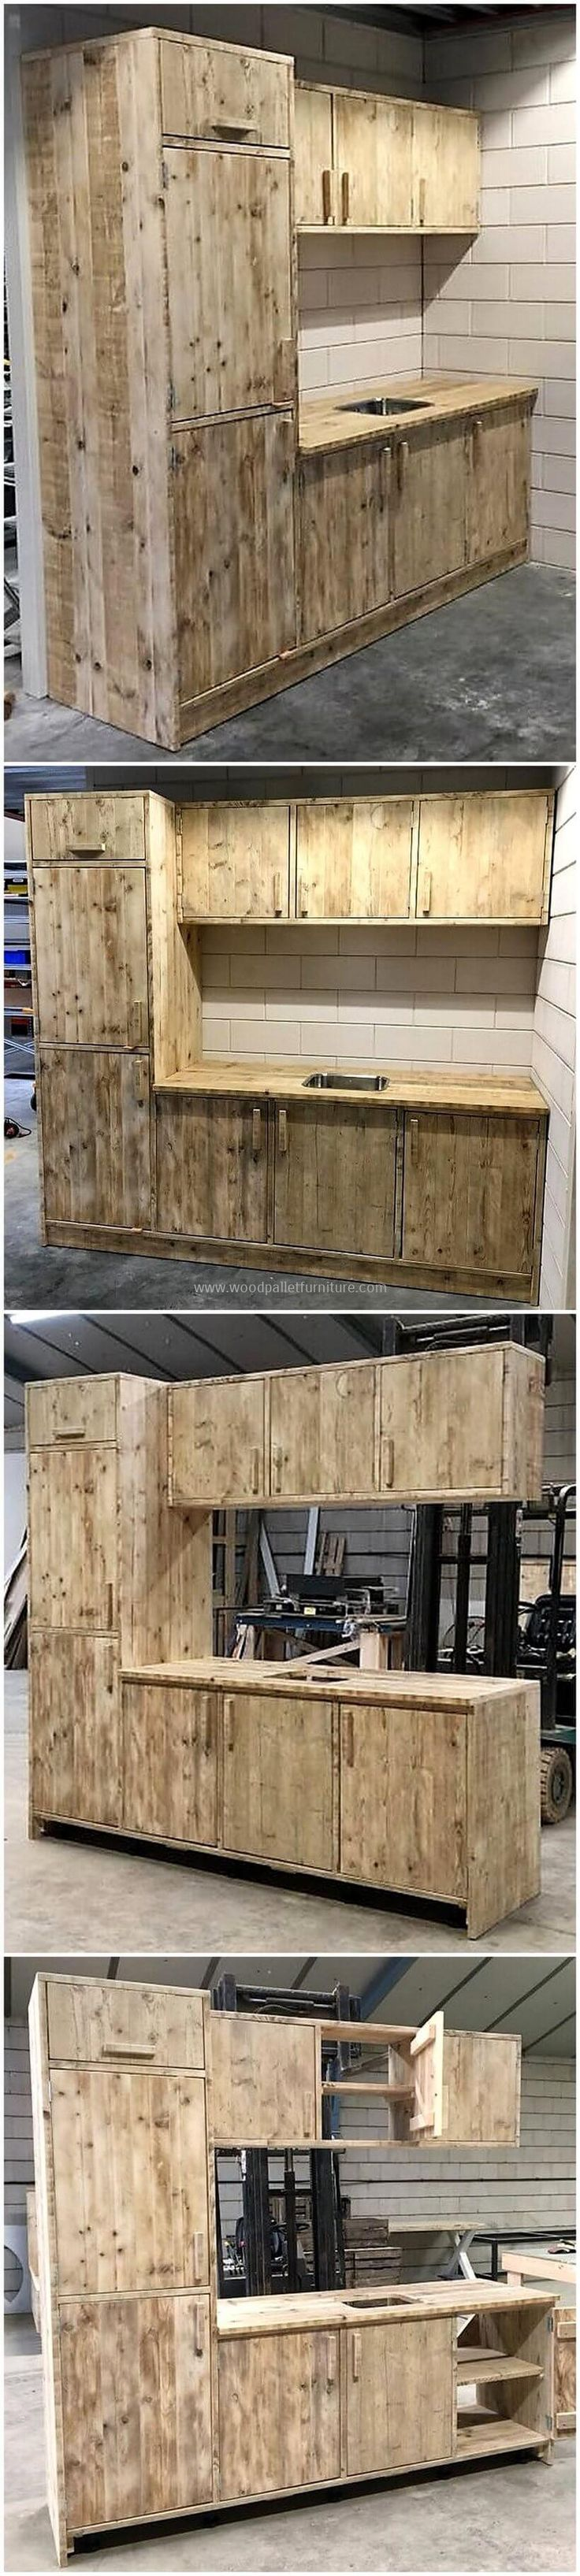 Here we are bringing to you smartly constructed wooden pallets made kitchen unit. This is the best wooden kitchen unit for every kitchen. It has three upper wooden cabinets, four in it's lower portion and two large wooden door cabinets on its sides. This project will reshape the beauty of your kitchen in an economical way.